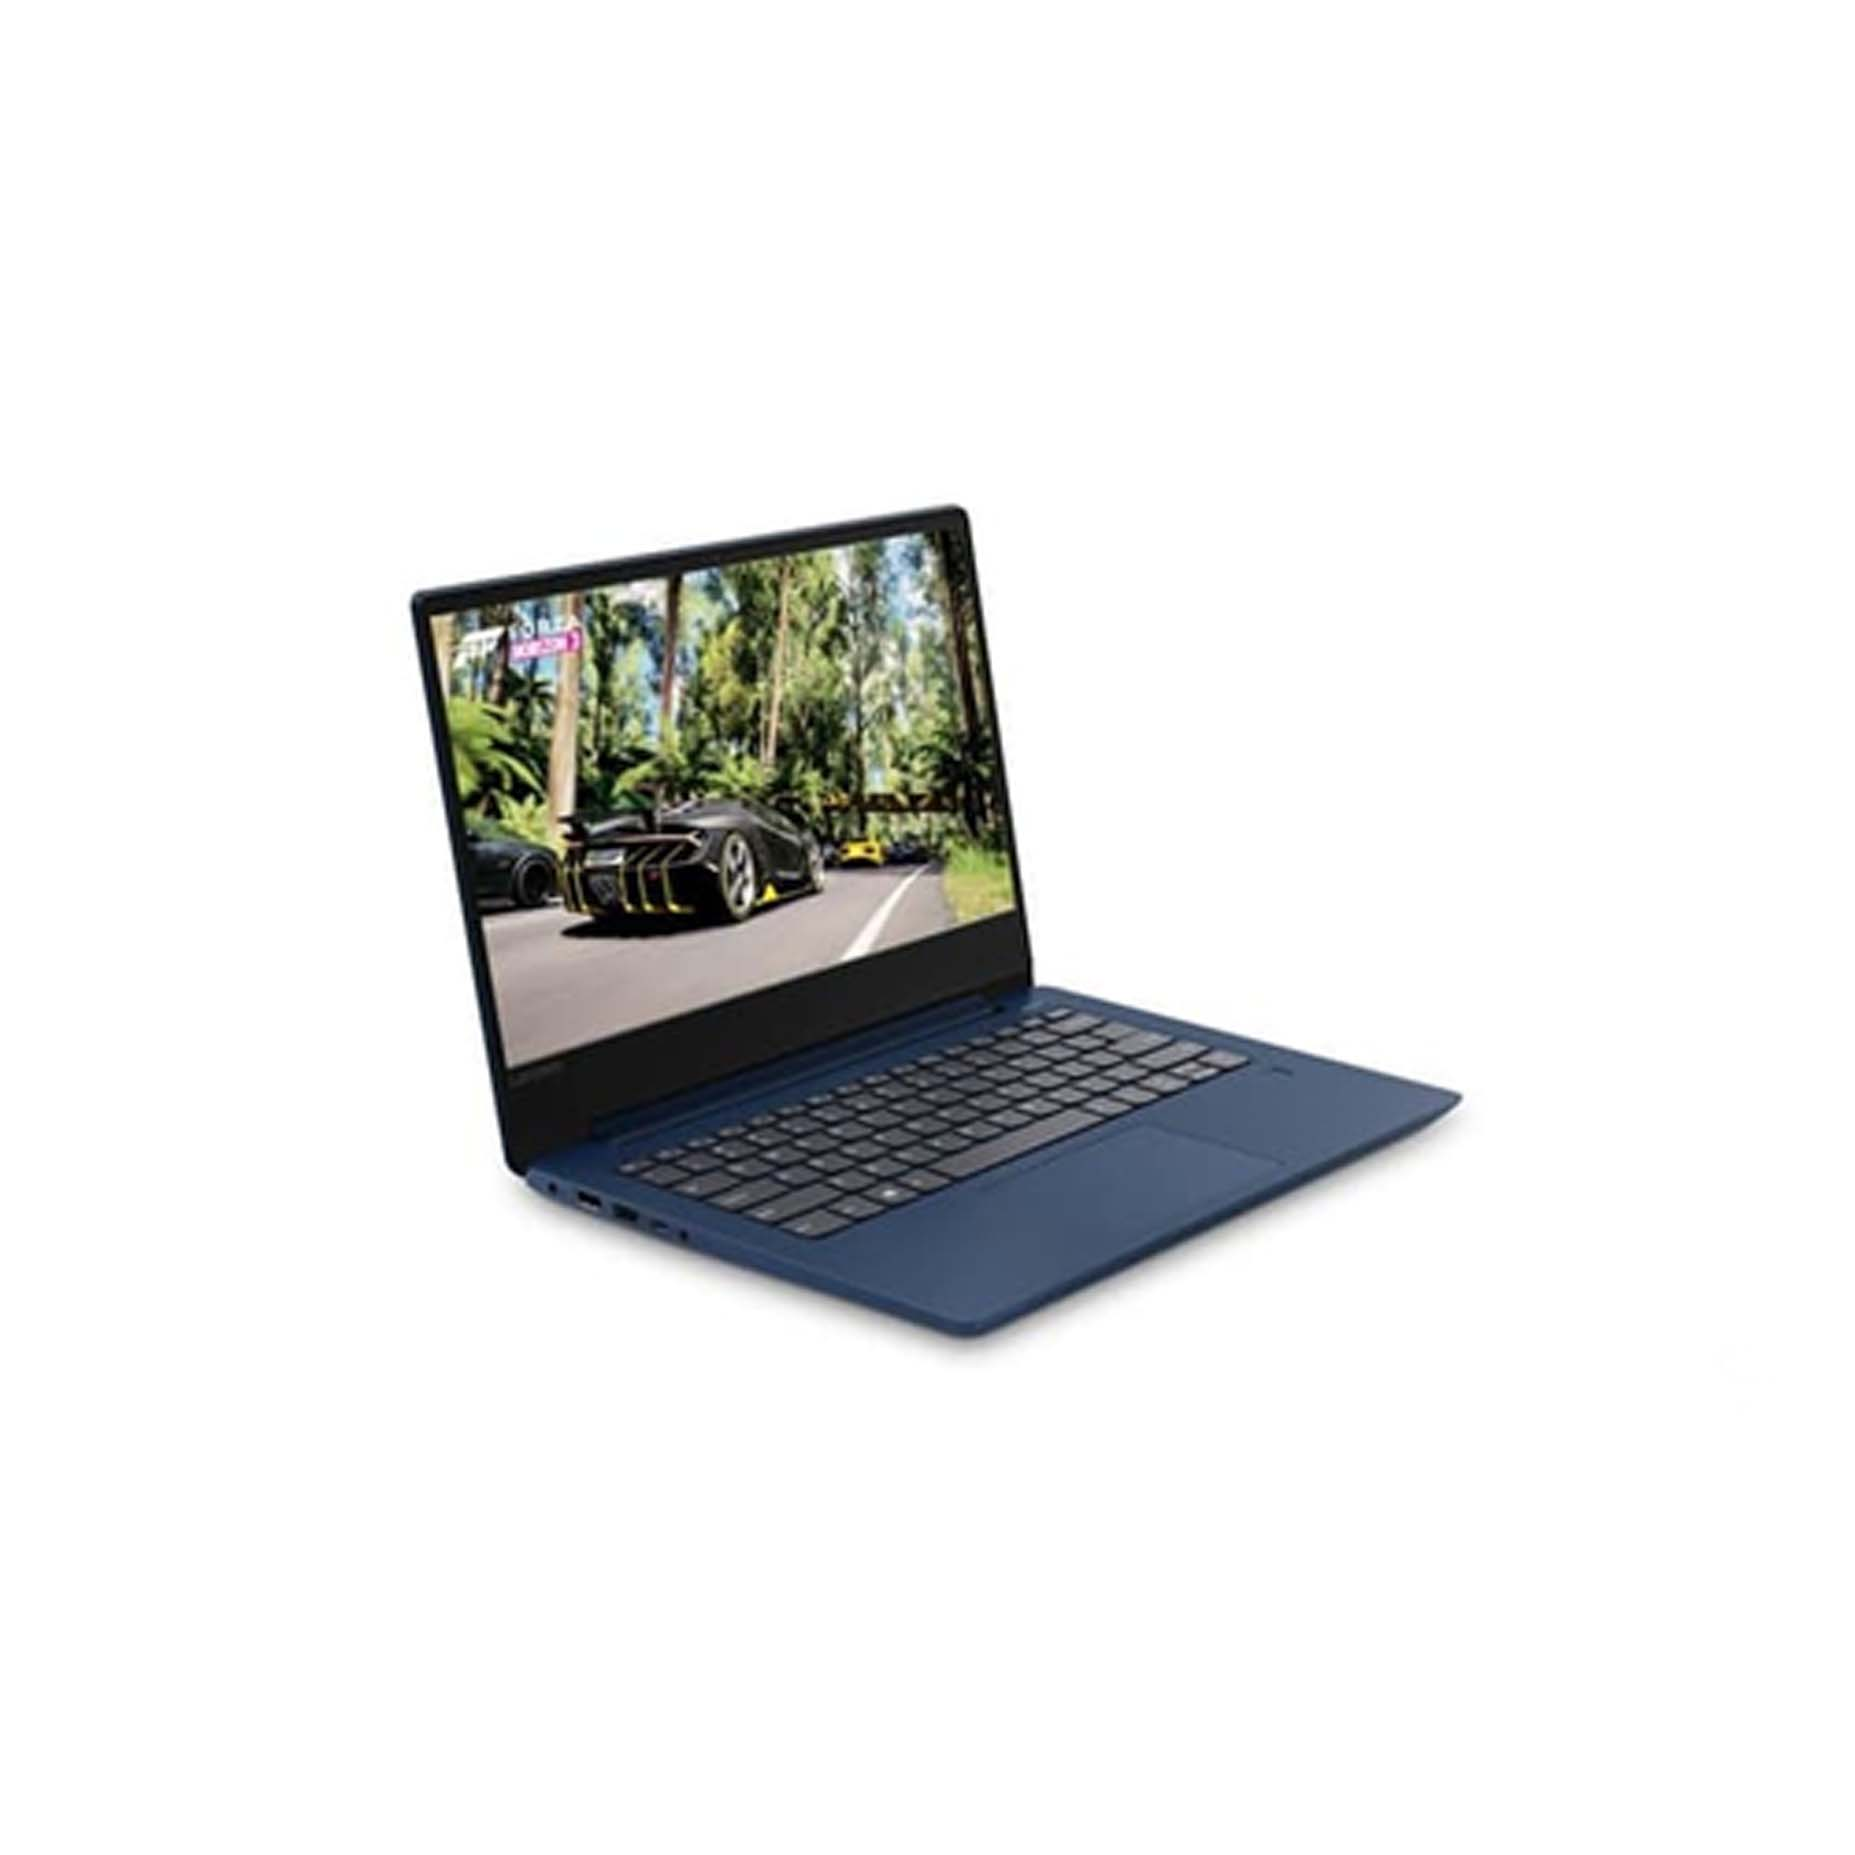 Harga Lenovo Ideapad IP330-14AST 3DID Laptop AMD Dual Core A9-9425 4GB 1TB AMD Radeon 530 2GB 14 Inch DOS Blue